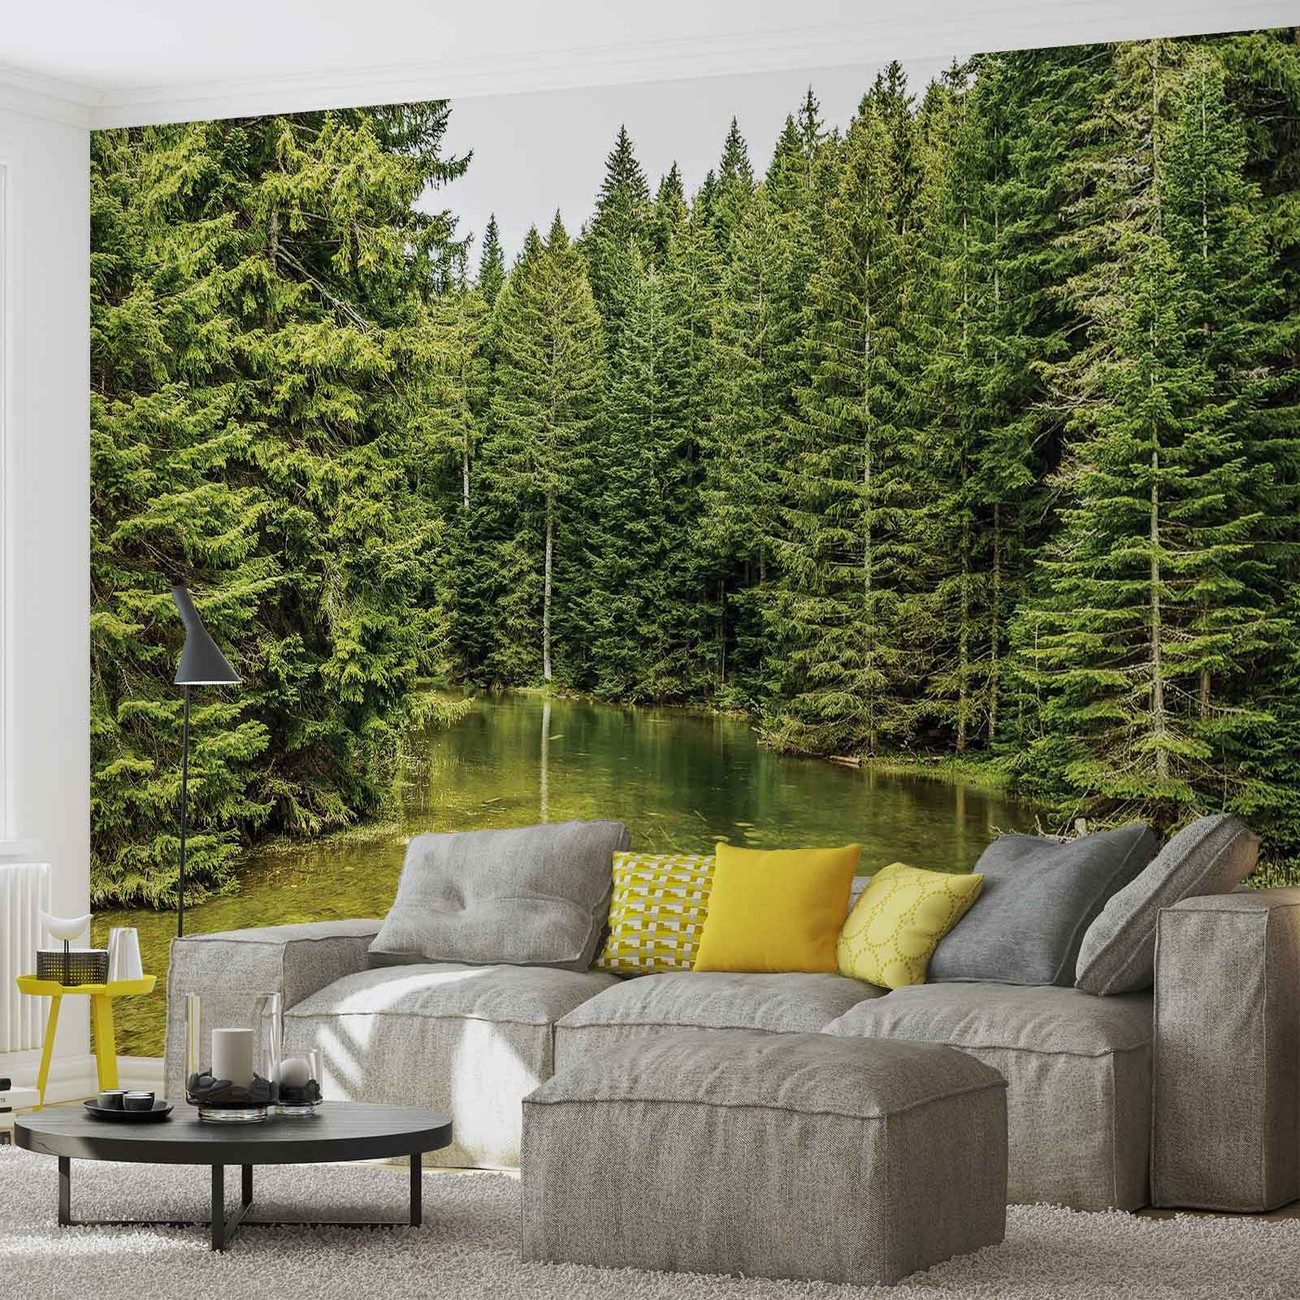 river forest nature wall paper mural buy at europosters. Black Bedroom Furniture Sets. Home Design Ideas